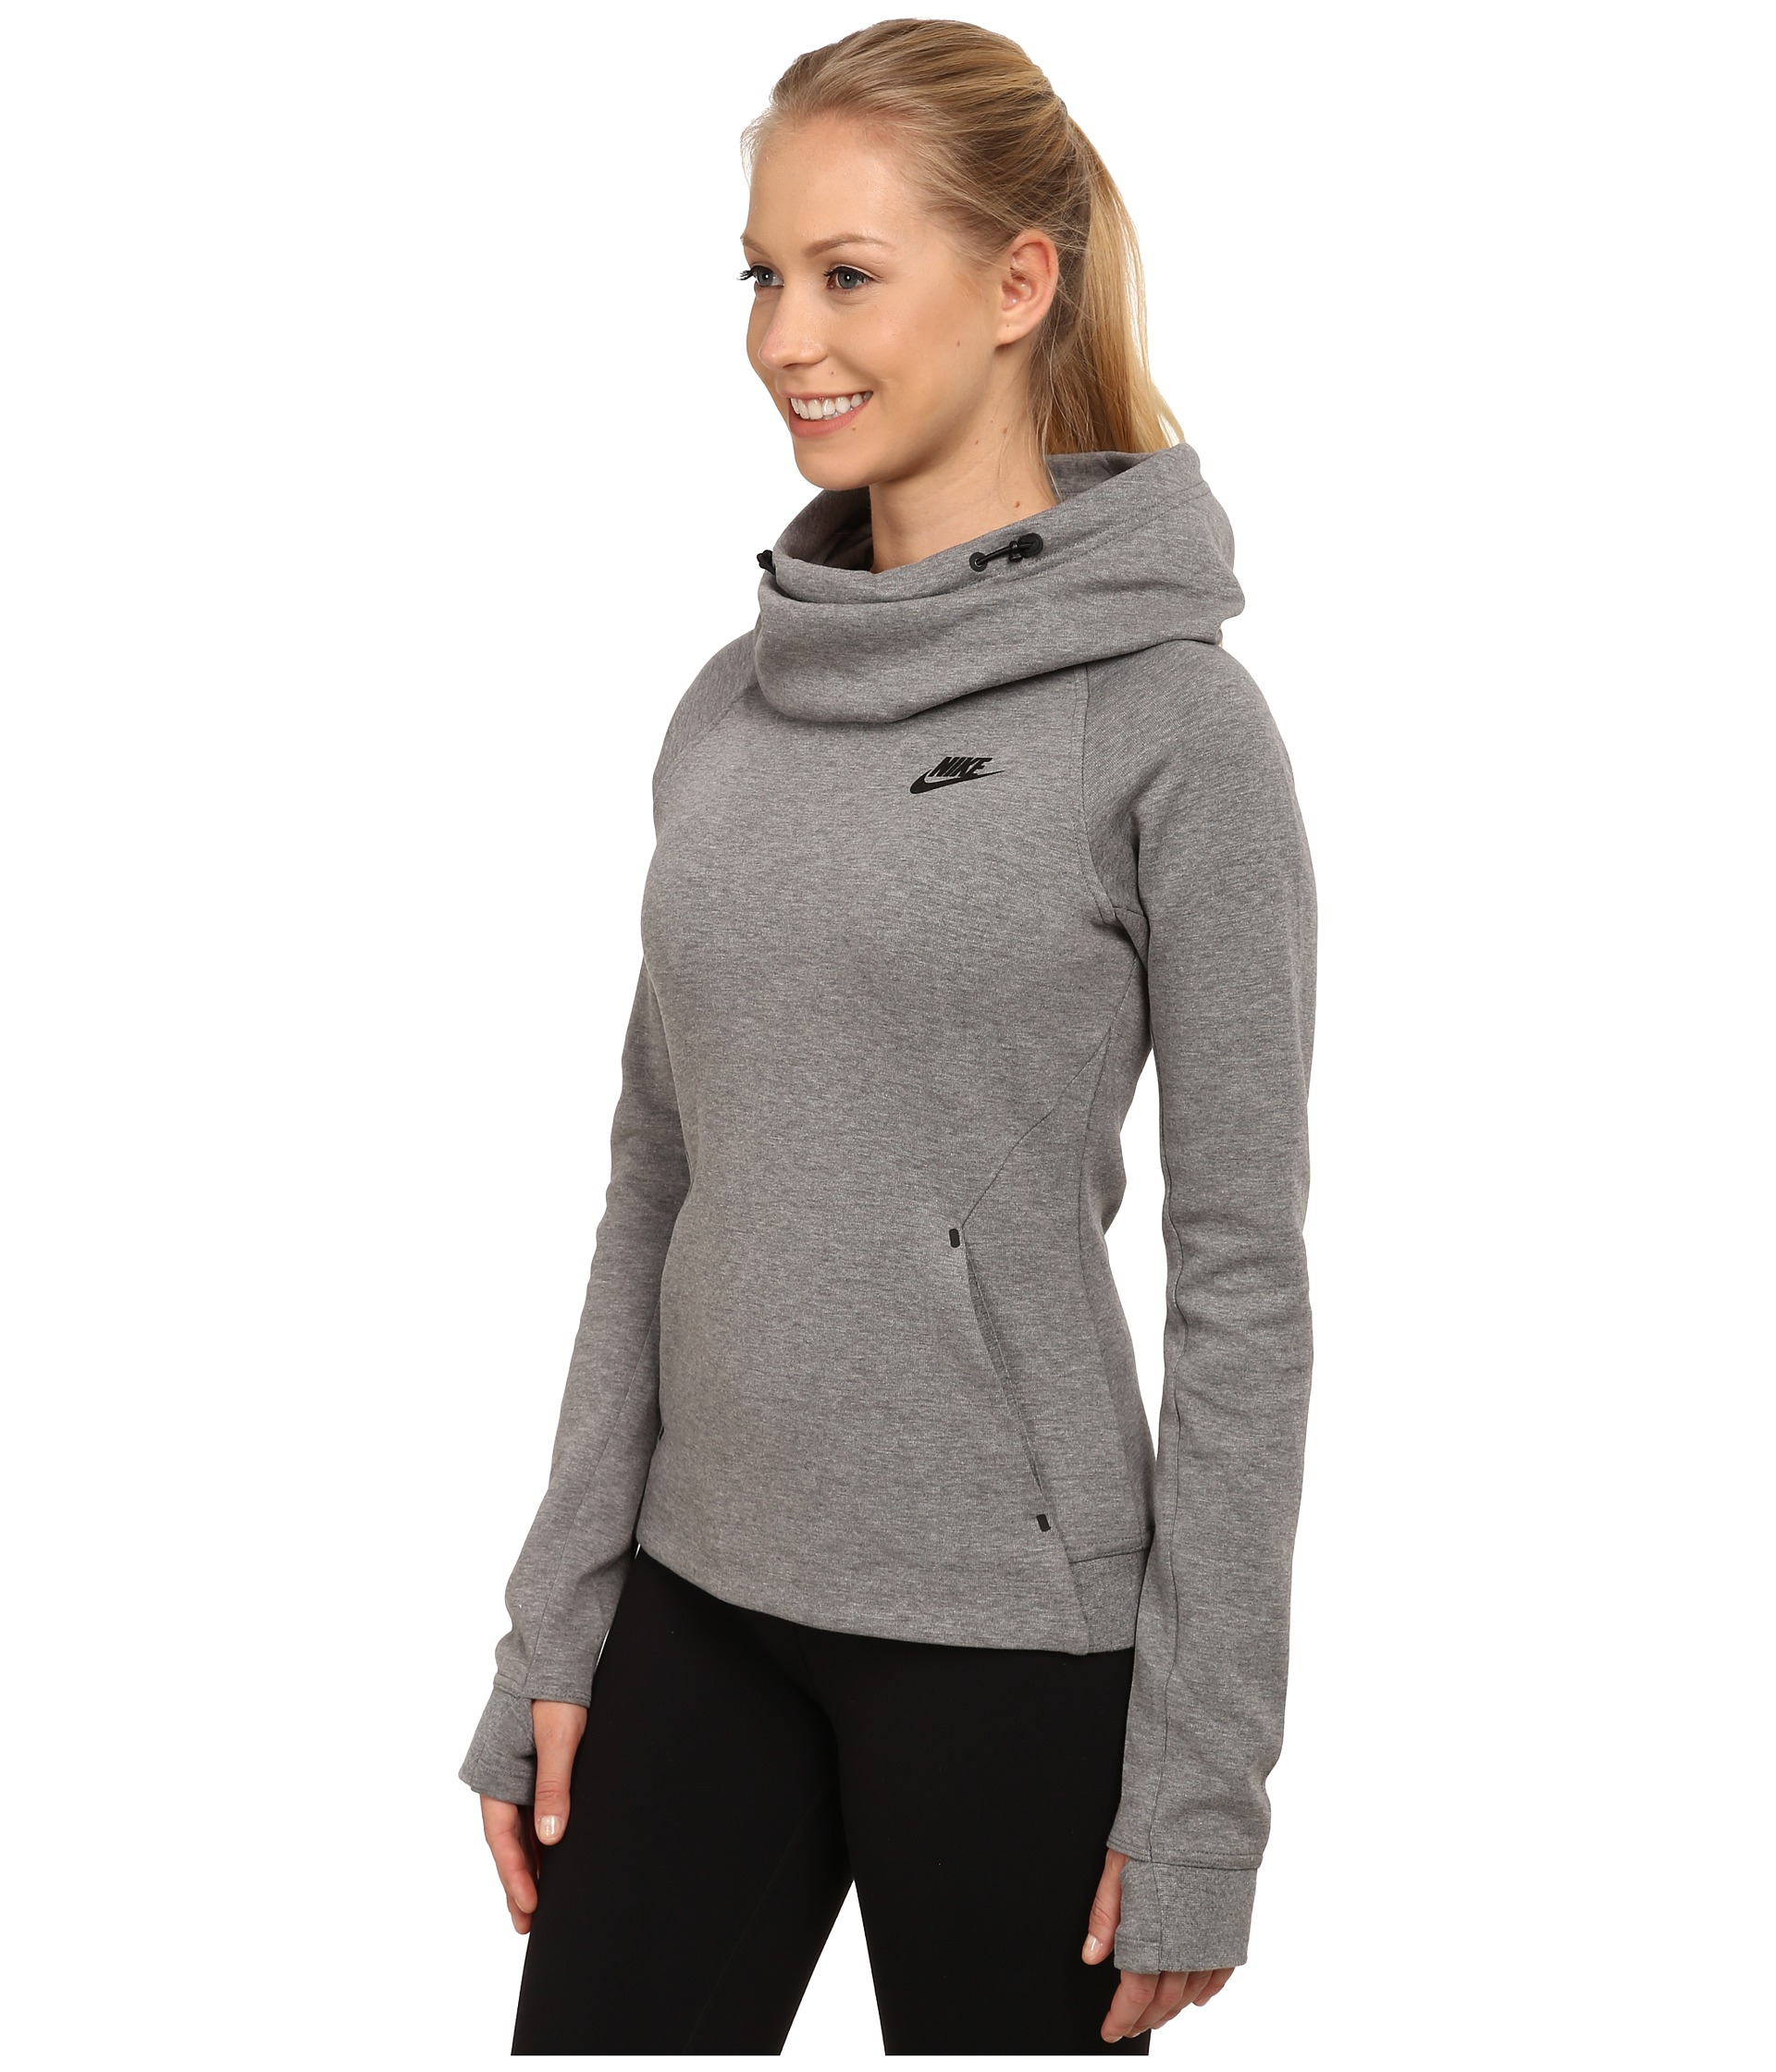 Nike Tech Fleece Hoodie - Zappos.com Free Shipping BOTH Ways